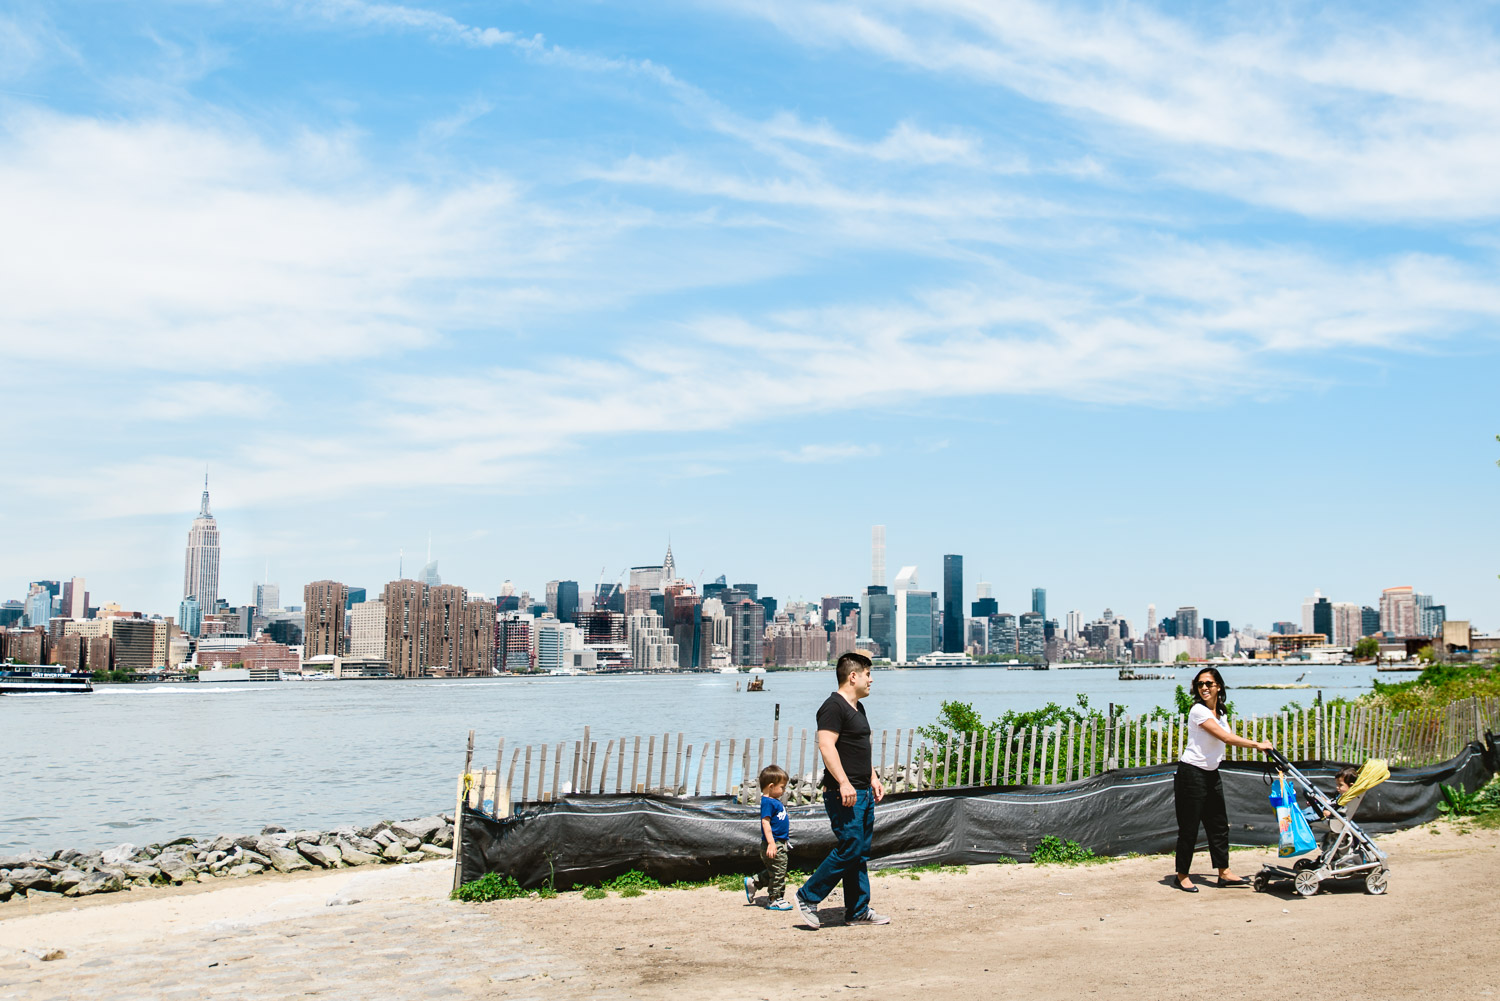 A family walks by the east river in NYC.